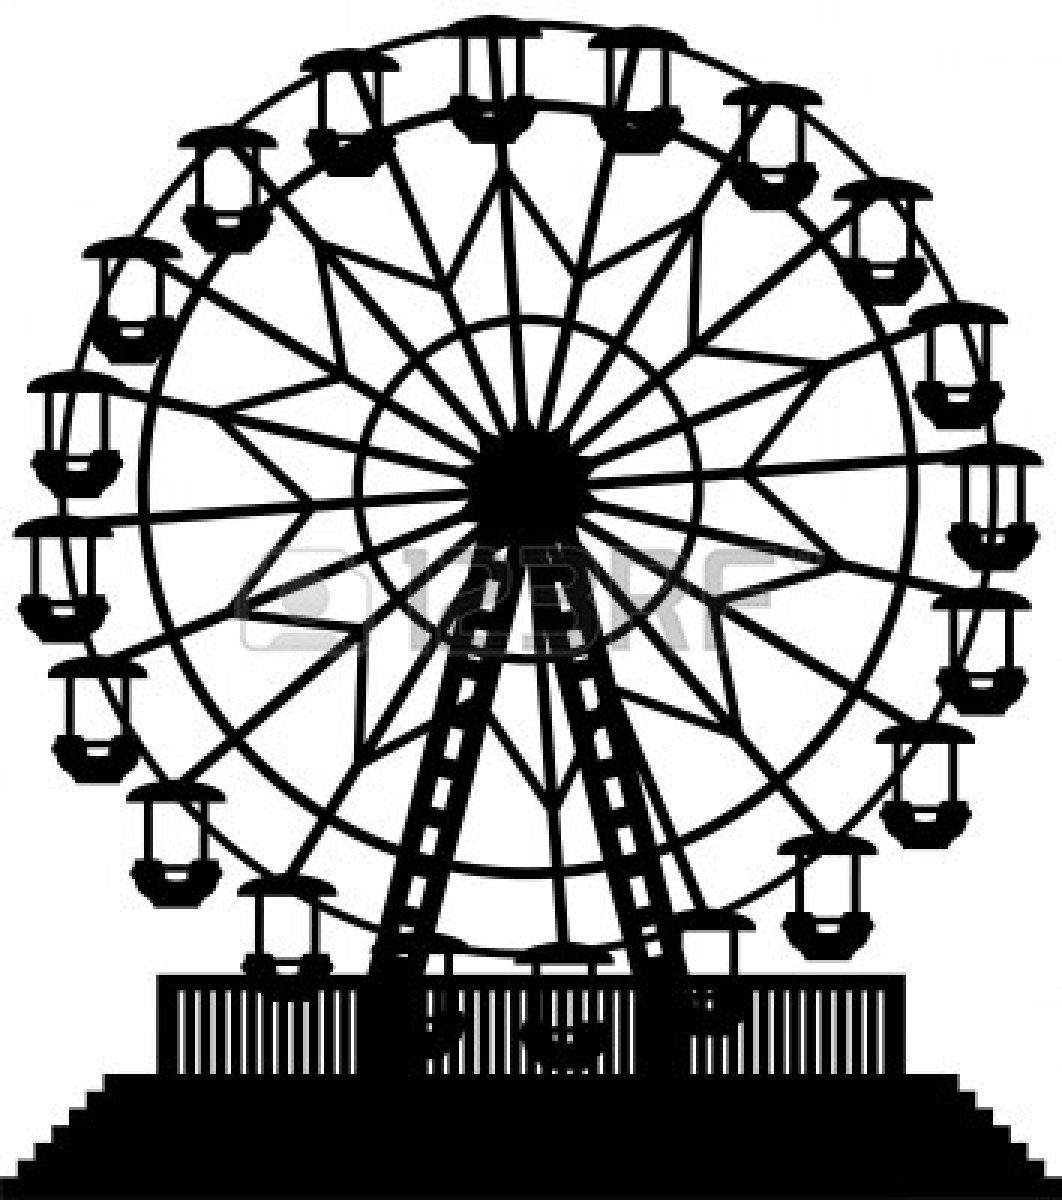 Ferris wheel clipart wheels and 2-Ferris wheel clipart wheels and 2-13